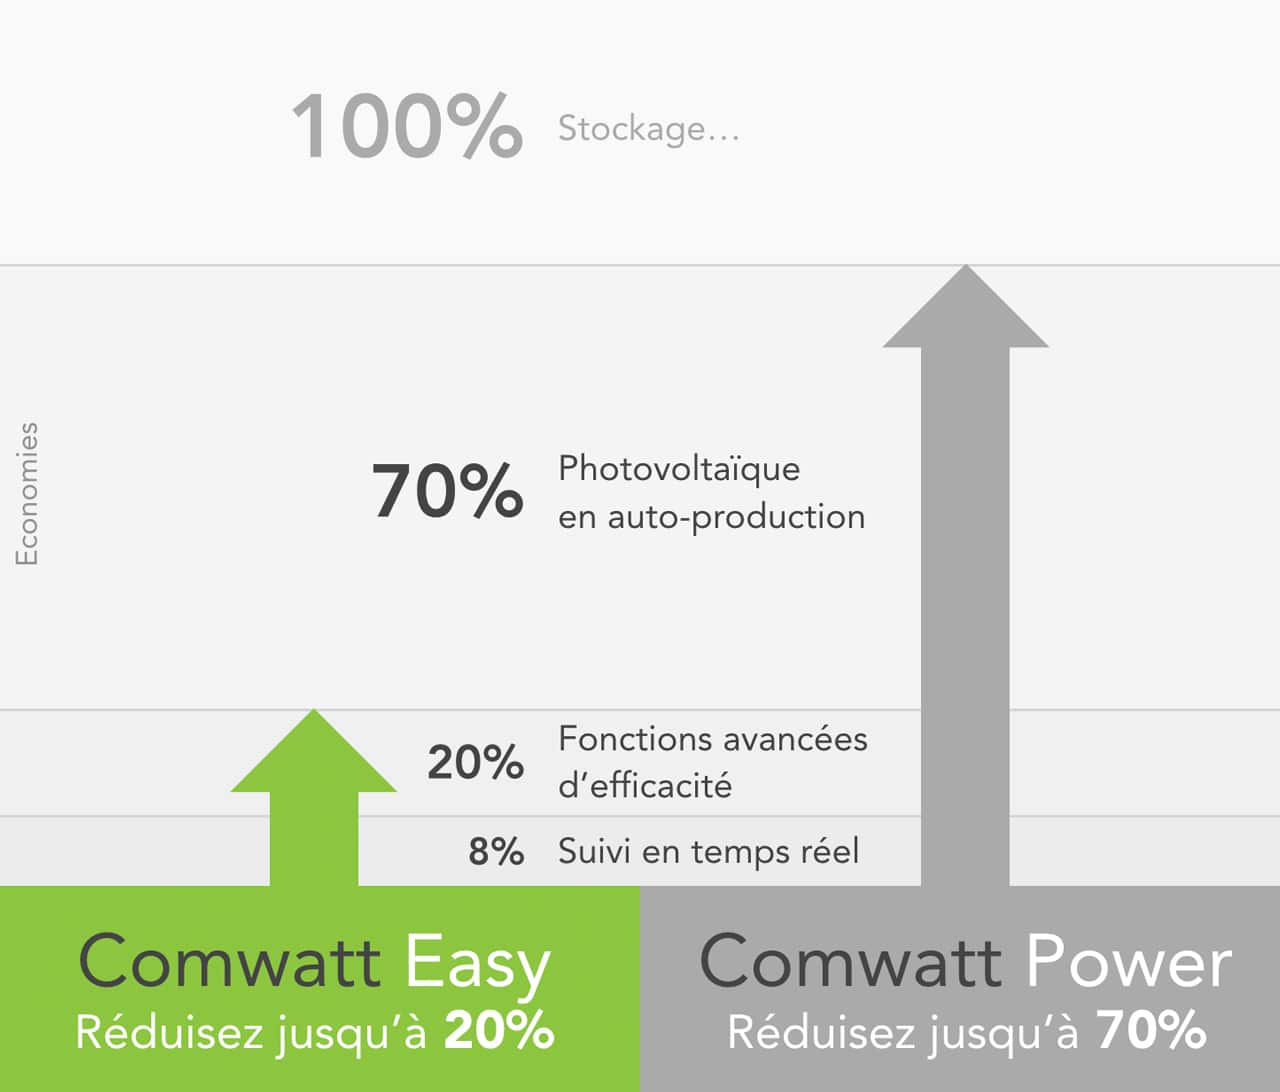 Performance Comwatt Easy